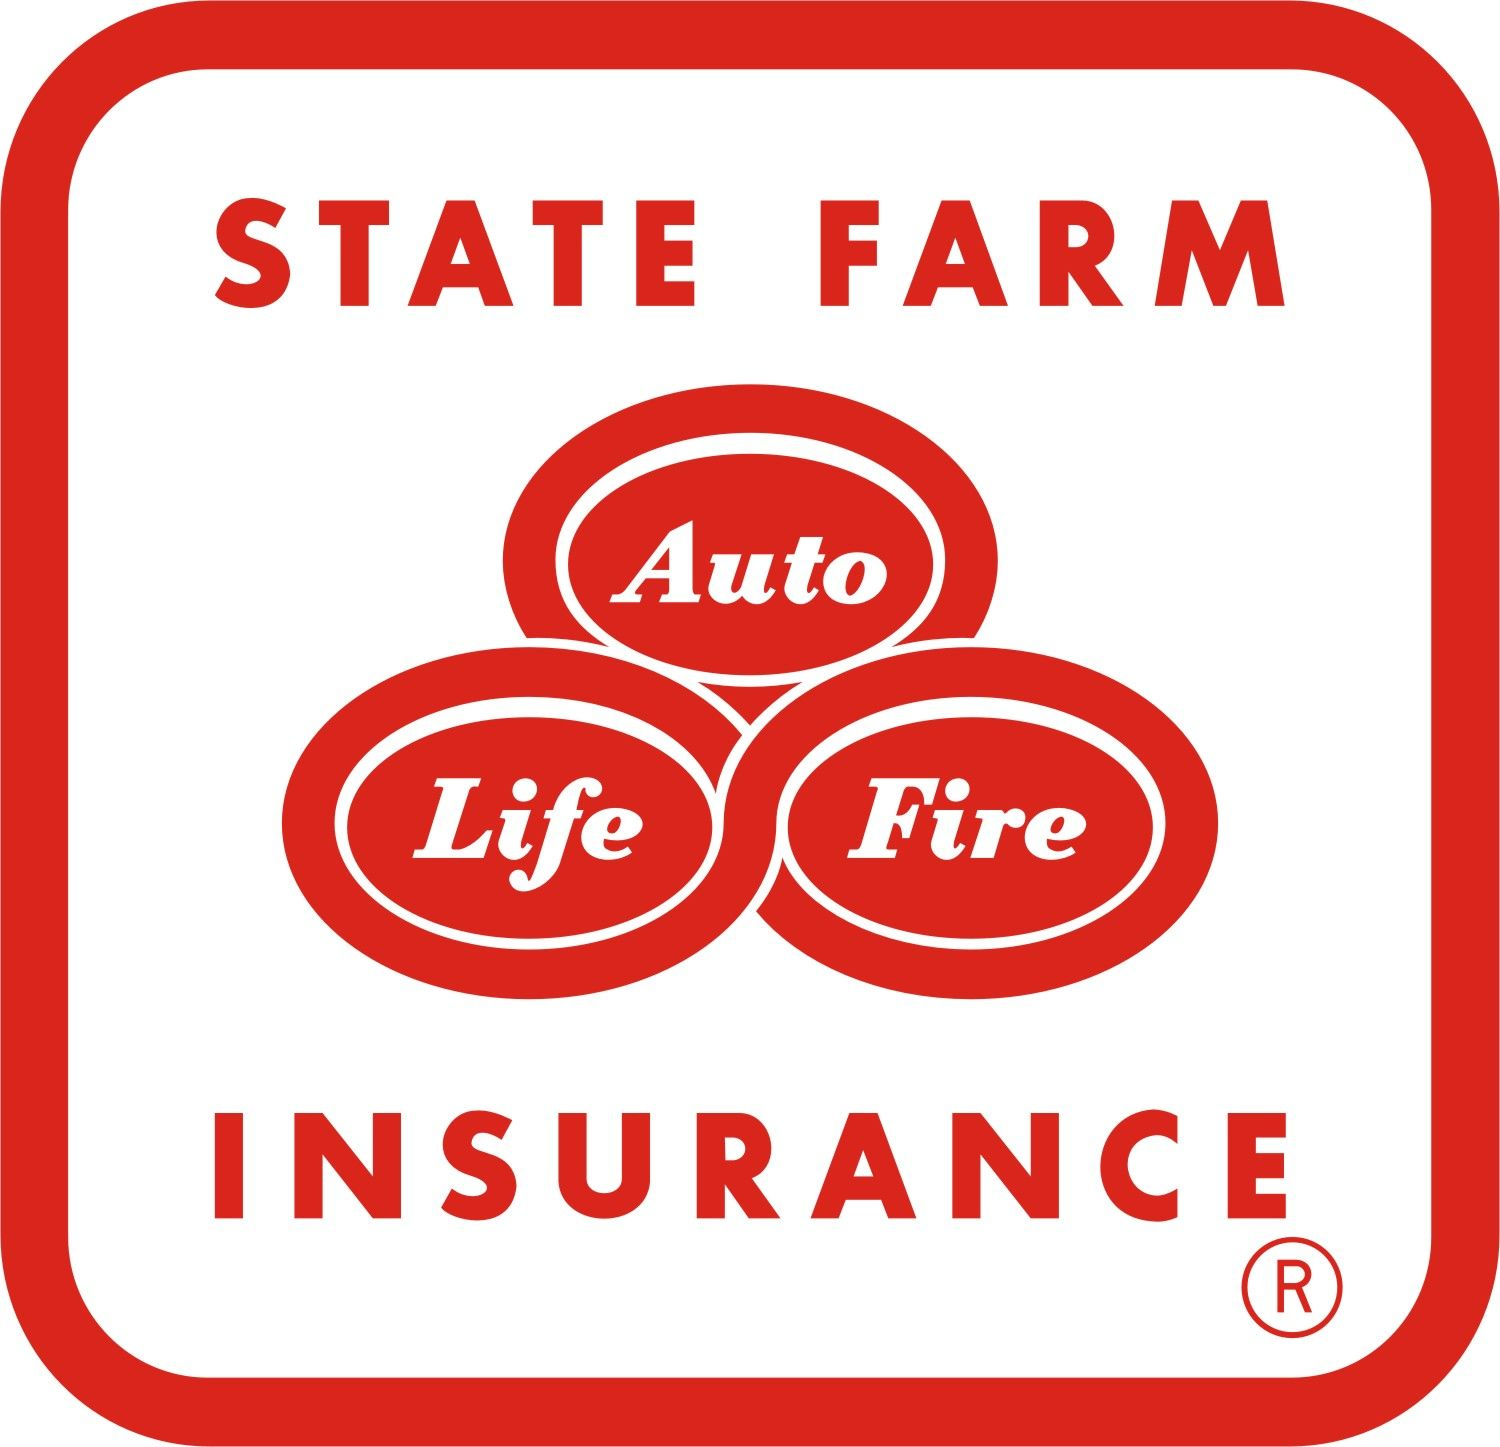 Bloomington Is The Proud Home Of State Farm Insurance Our Largest